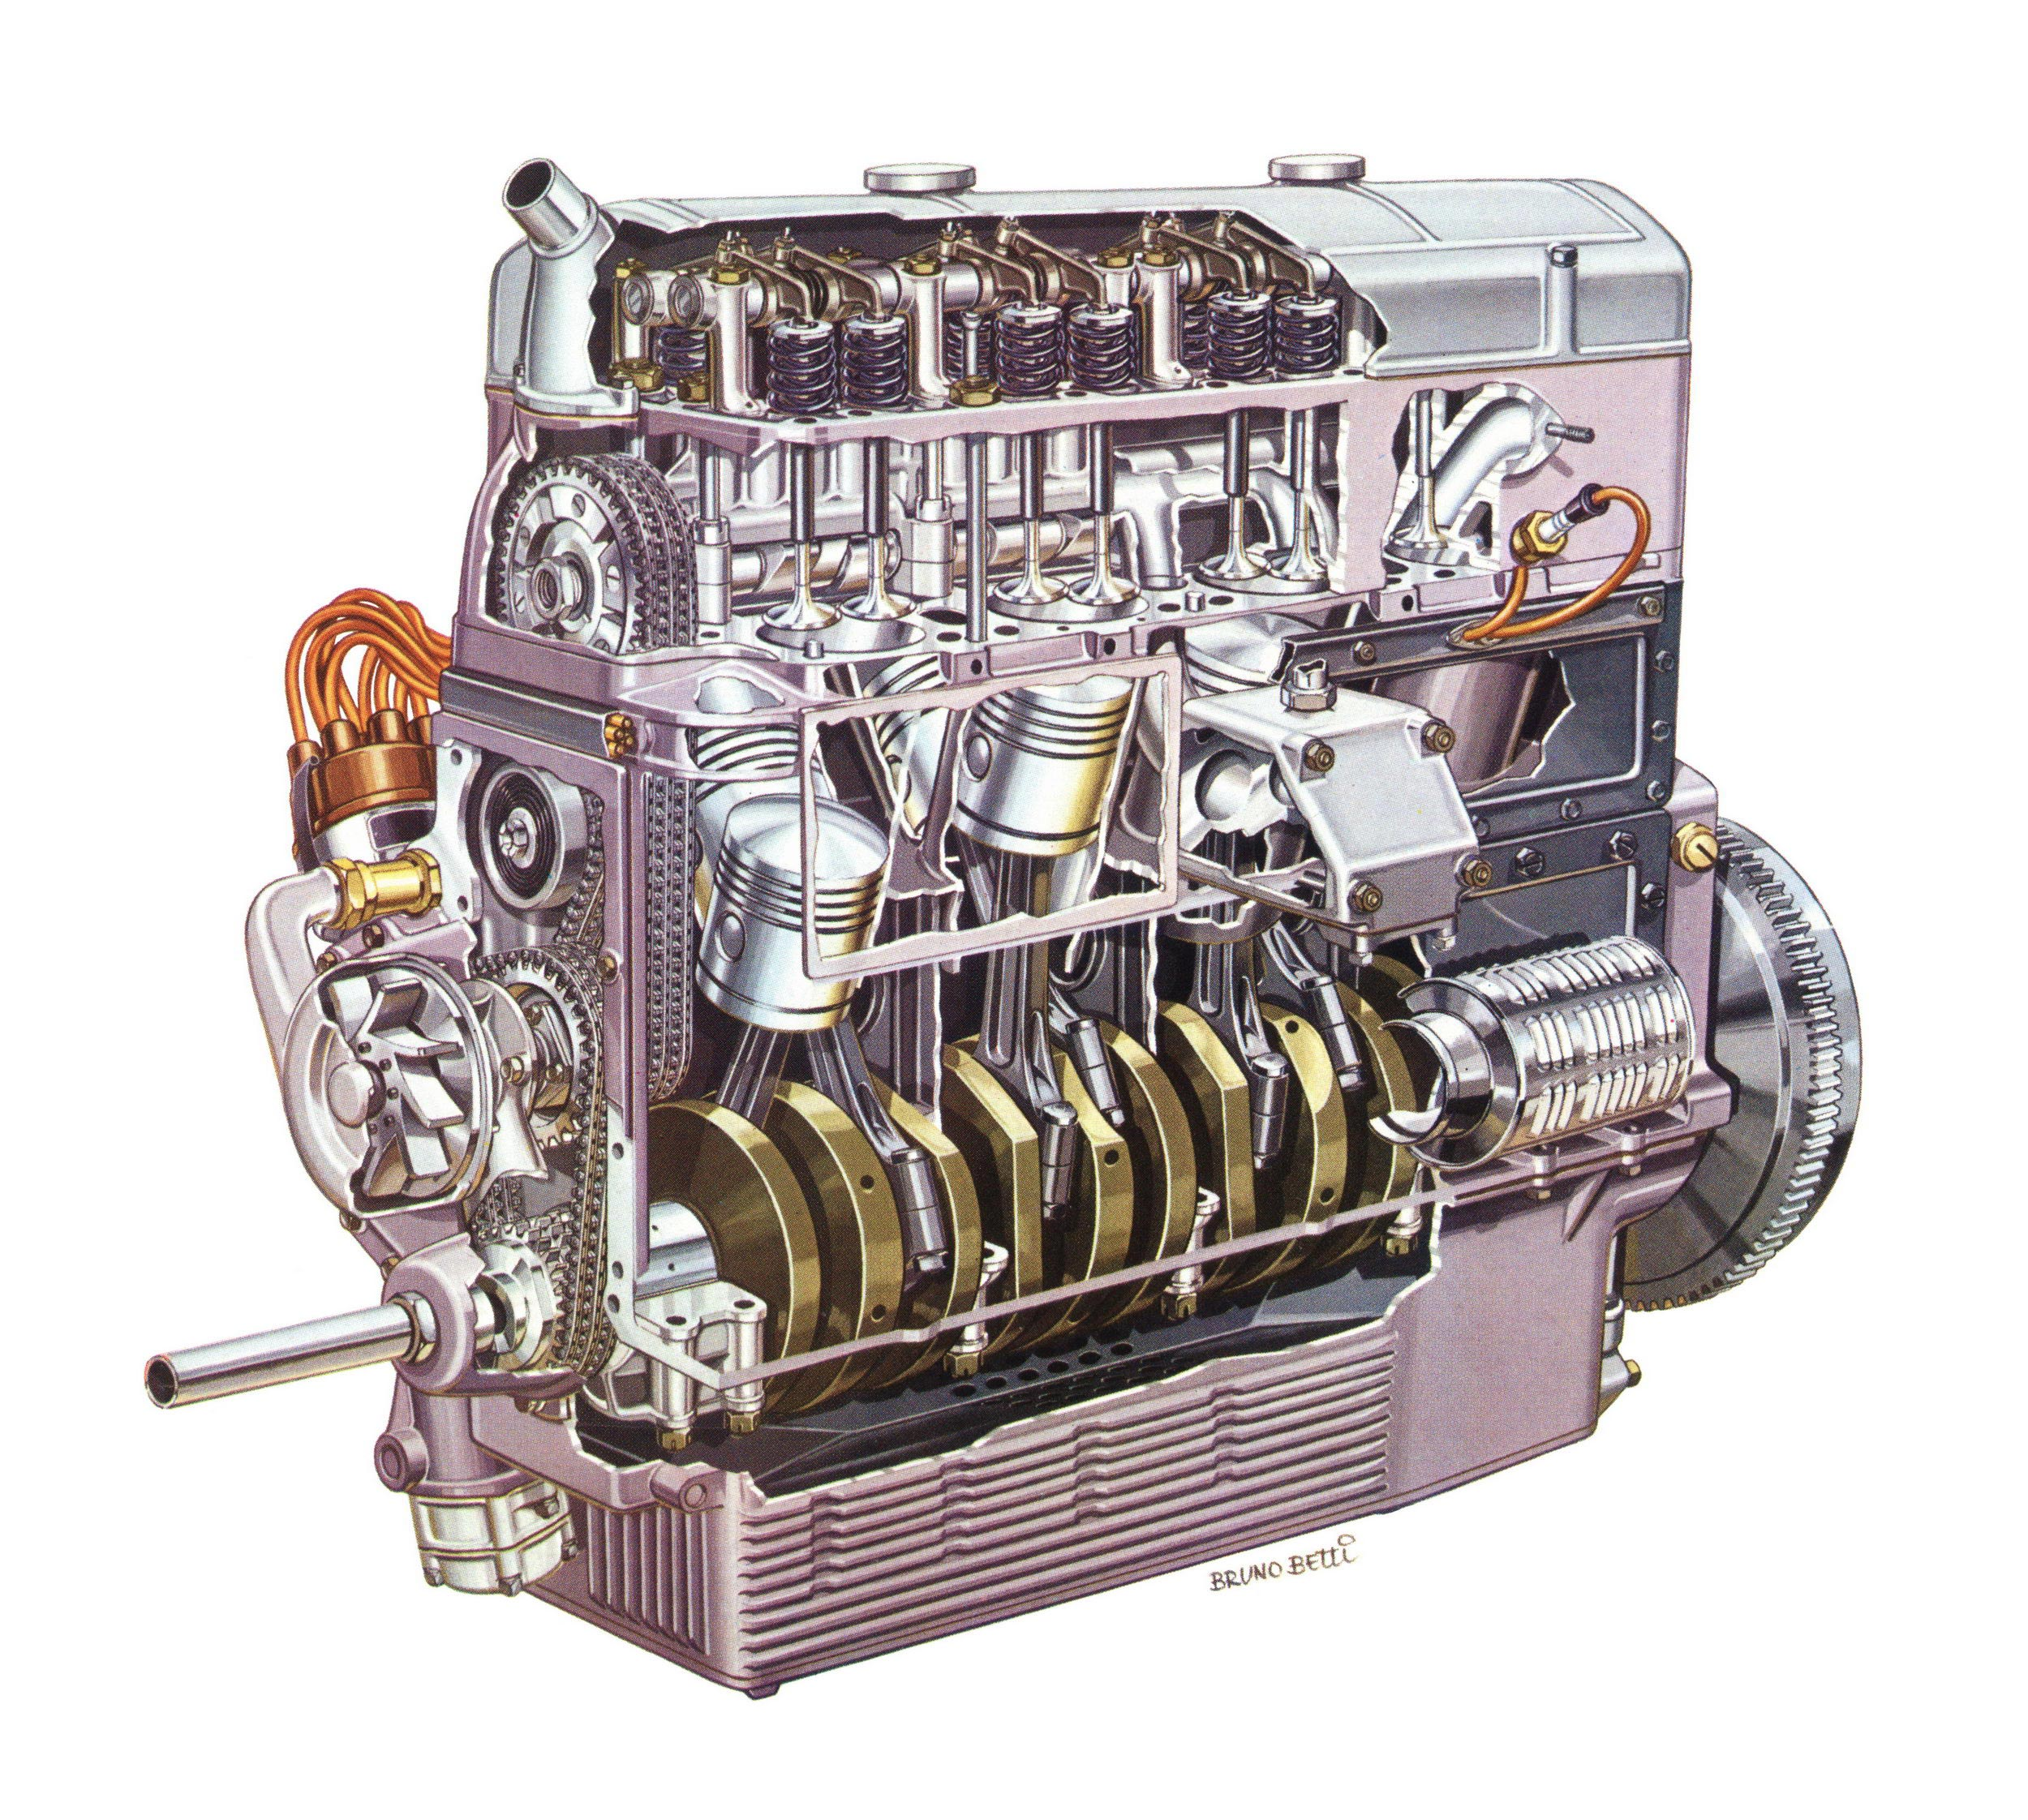 Lancia Dilambda Engine cutaway drawing